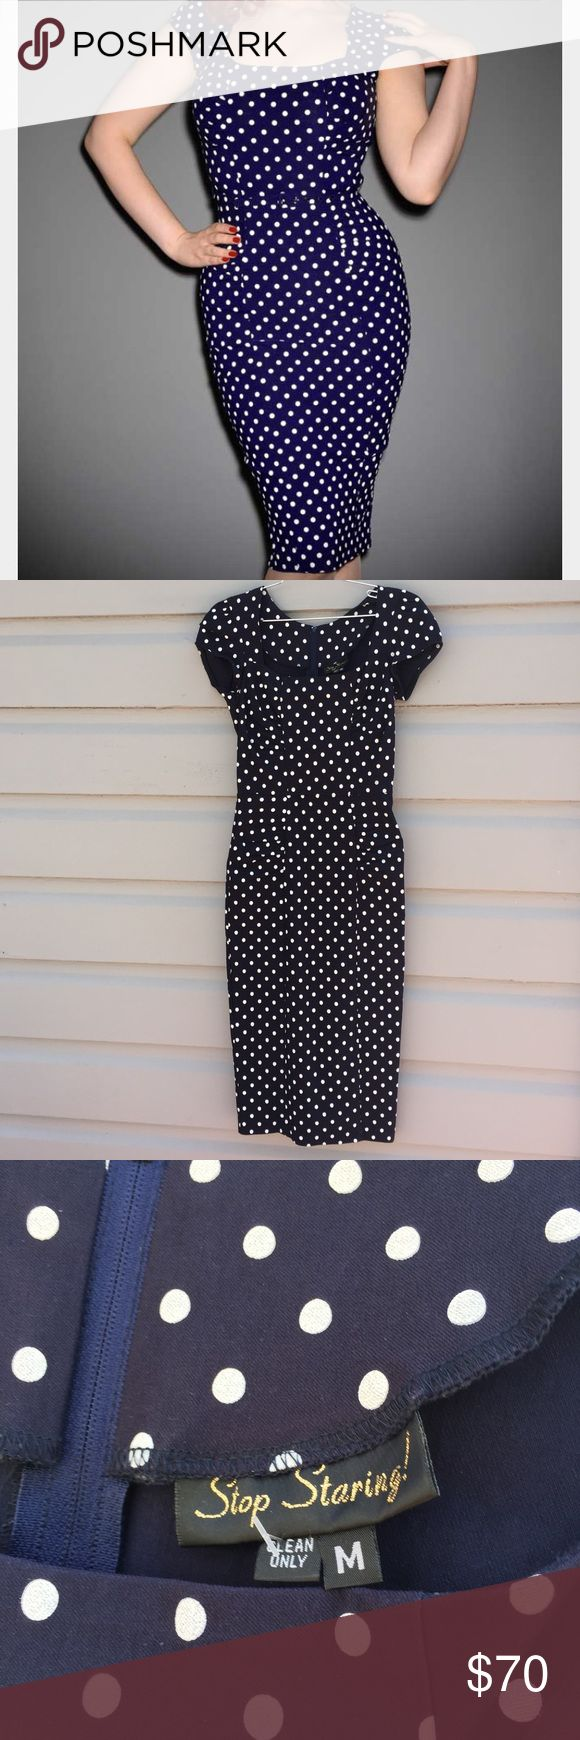 Stop Staring Celebrity dress navy medium BNWOT flawless and stunning dress with pin up appeal by Stop Staring in size medium. Fun navy polka dot print, plenty of stretch. A dream! Stop Staring Dresses Midi